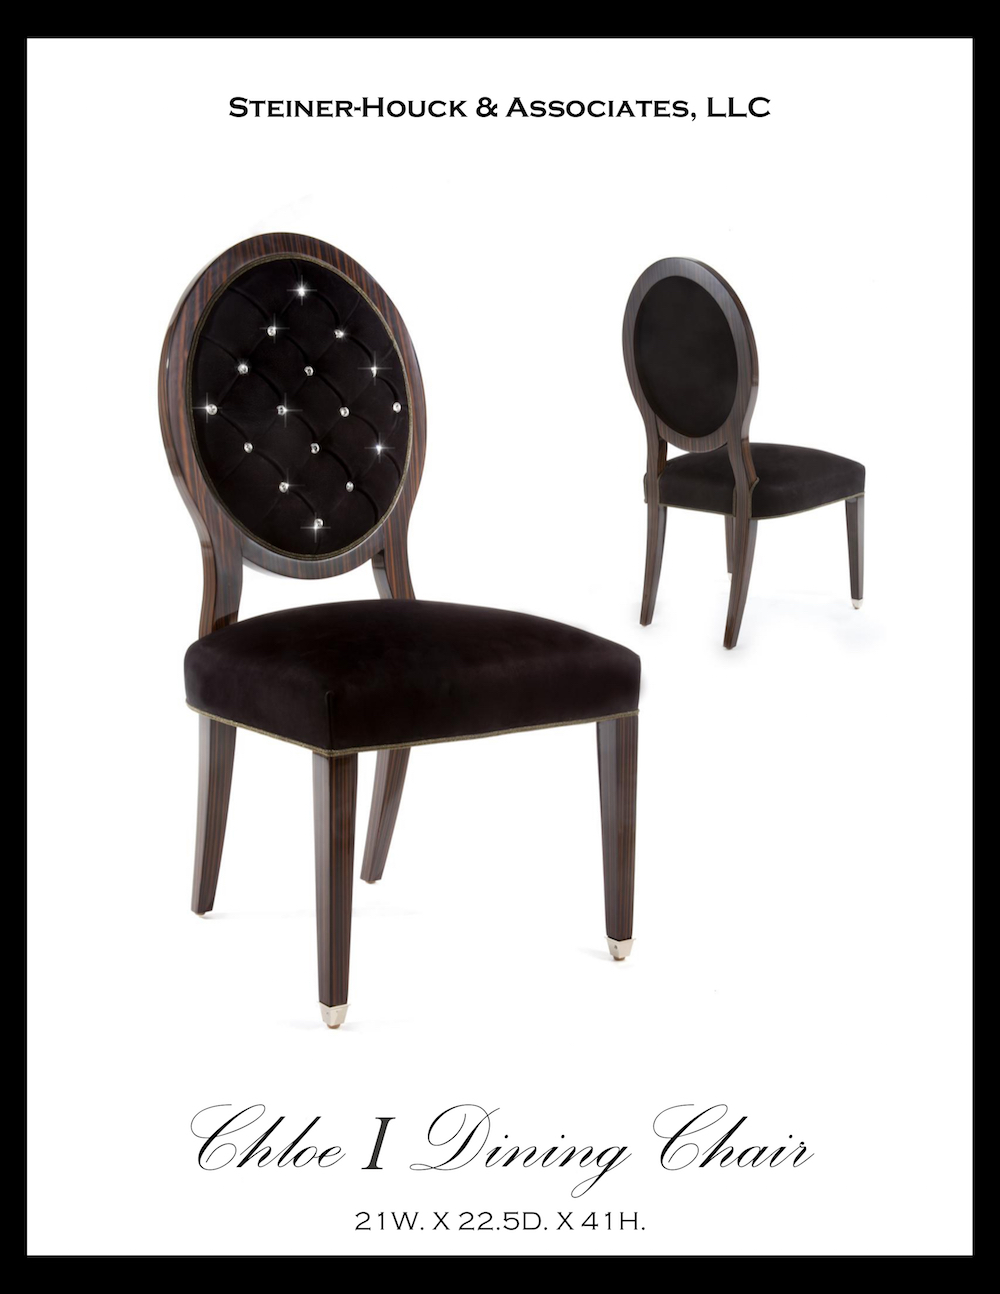 Interior Design Lancaster Pa Gallery Private Upholstery Collection 5 Chloe I Dining Chair Page